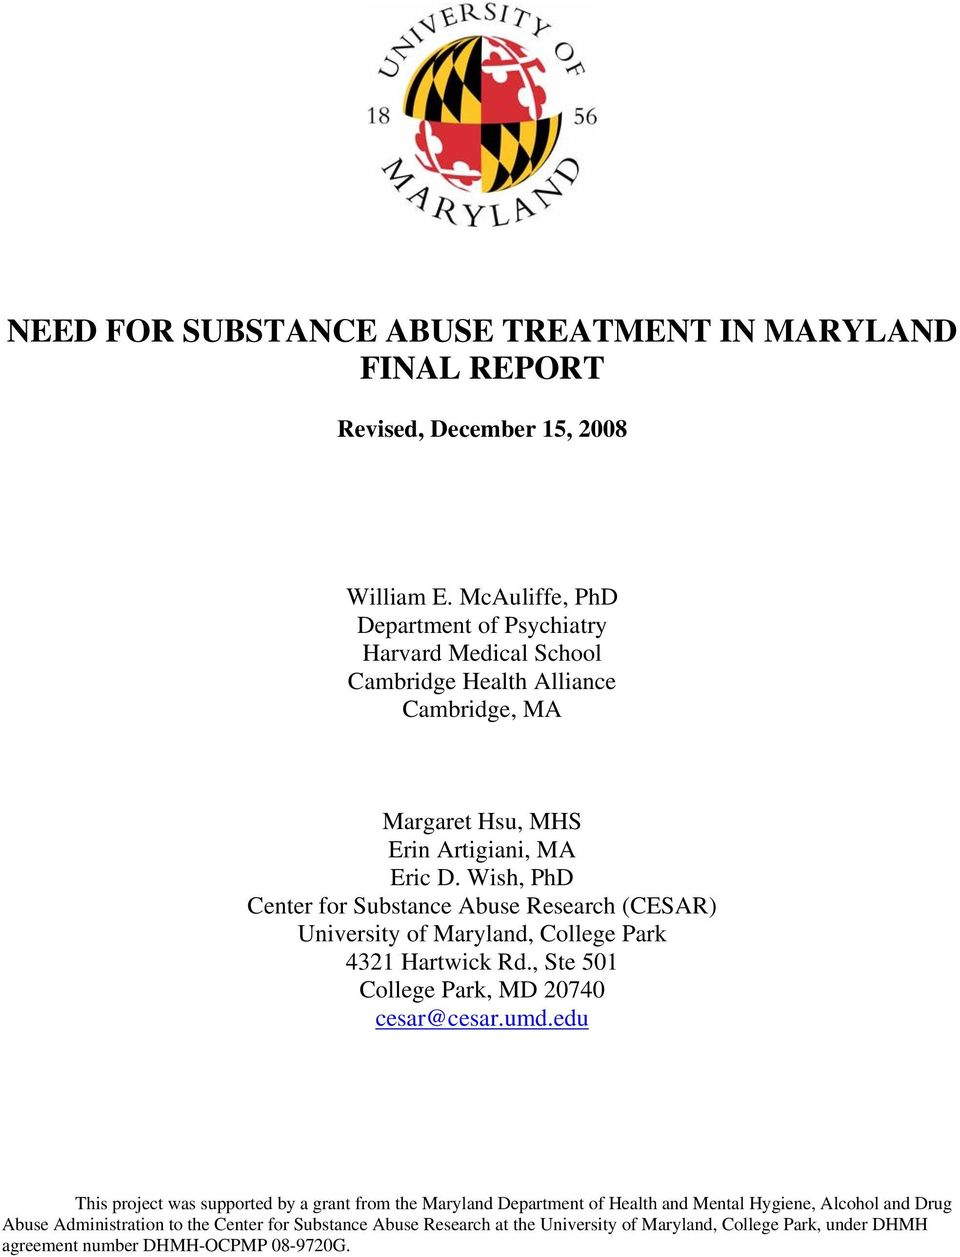 Wish, PhD Center for Substance Abuse Research (CESAR) University of Maryland, College Park 4321 Hartwick Rd., Ste 501 College Park, MD 20740 cesar@cesar.umd.